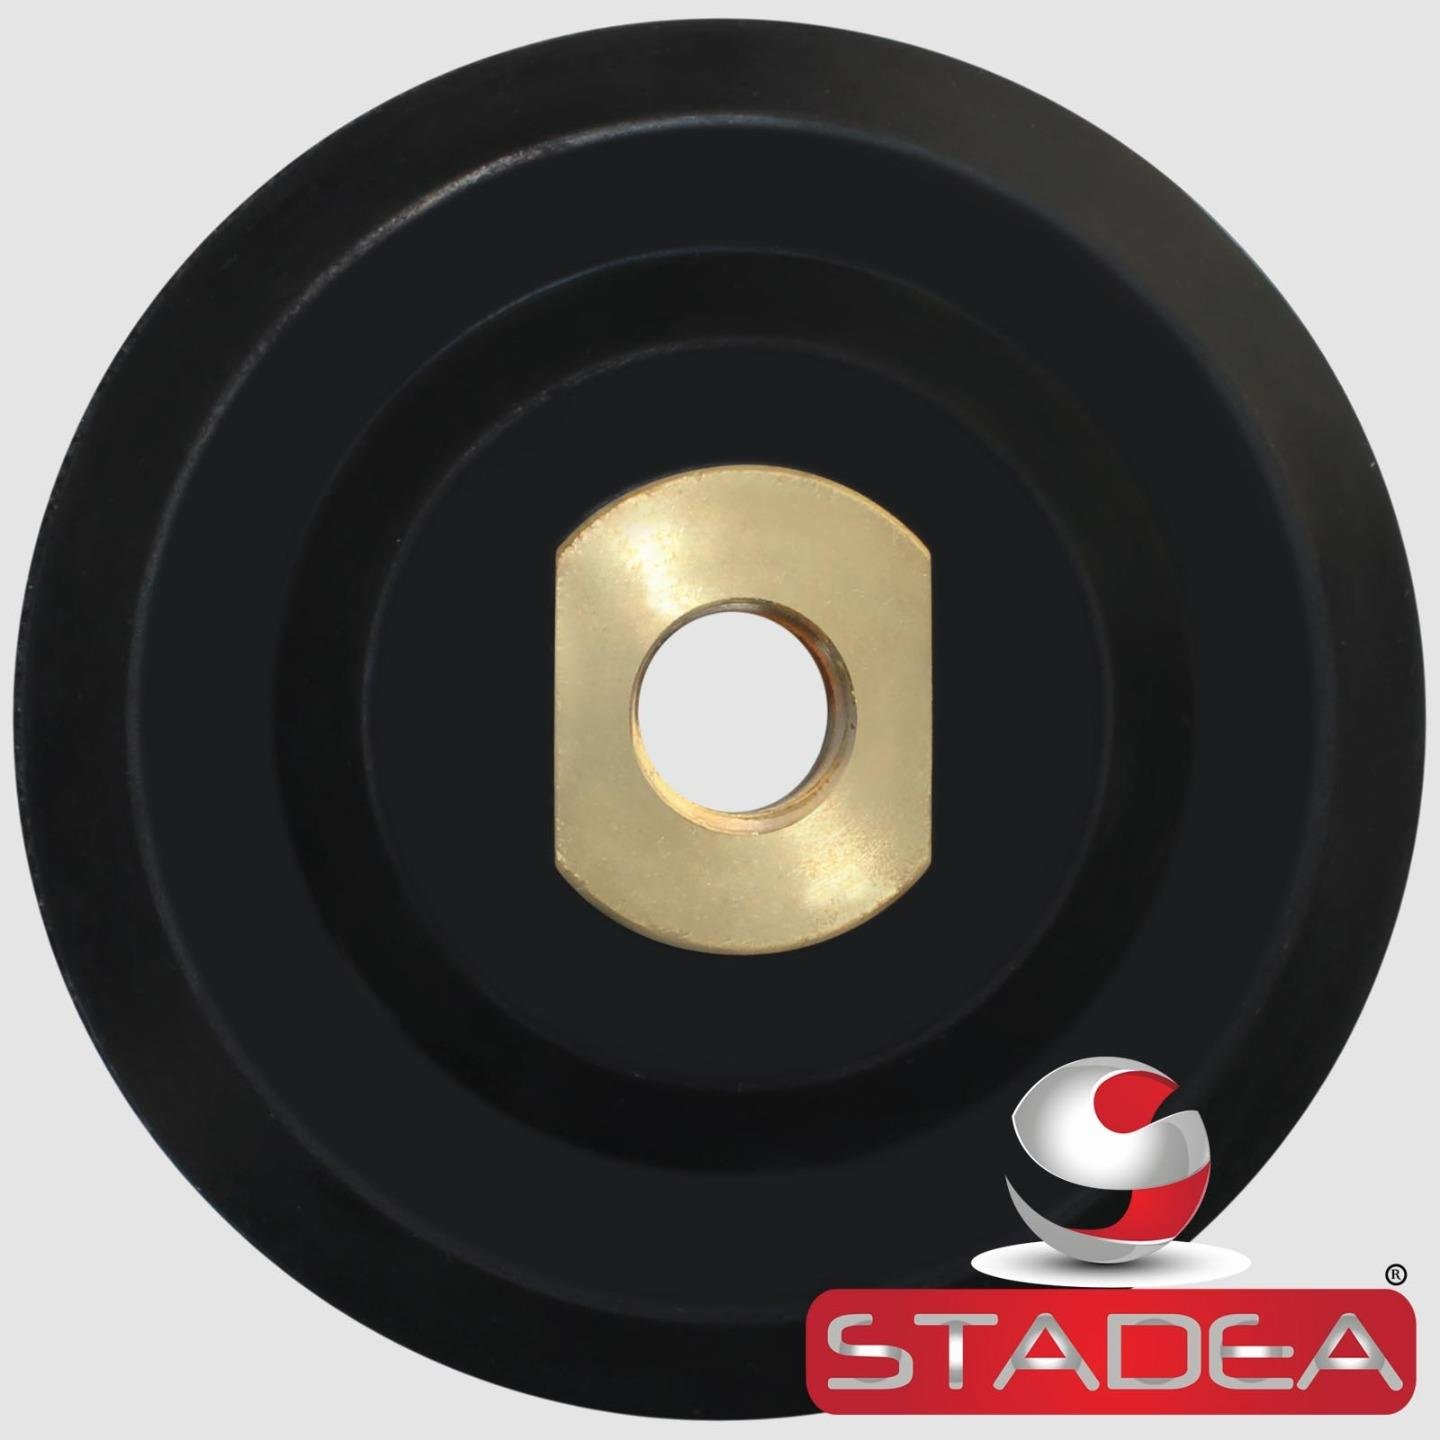 5' hook and loop backing pad - Rubber Backing Pads By STADEA Shop N Save Diamond Tools BRRB05STDR00581P